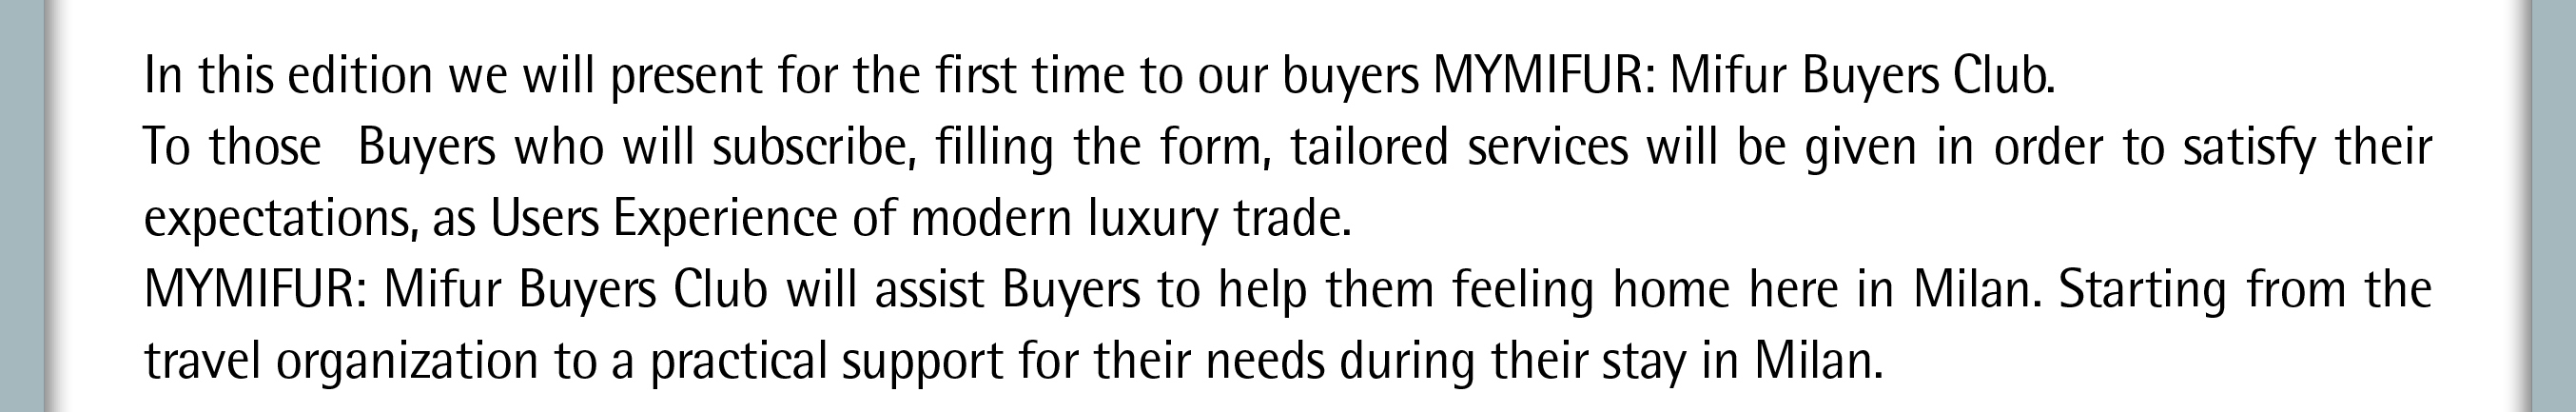 In this edition we will present for the first time to our buyers MYMIFUR: Mifur Buyers Club.  To those  Buyers who will subscribe, filling the form, tailored services will be given in order to satisfy their expectations, as Users Experienceof modern luxury trade. MYMIFUR: Mifur Buyers Club will assist Buyers to help them feeling home here in Milan. Starting from the travel organization to a practical support for their needs during their stay in Milan.